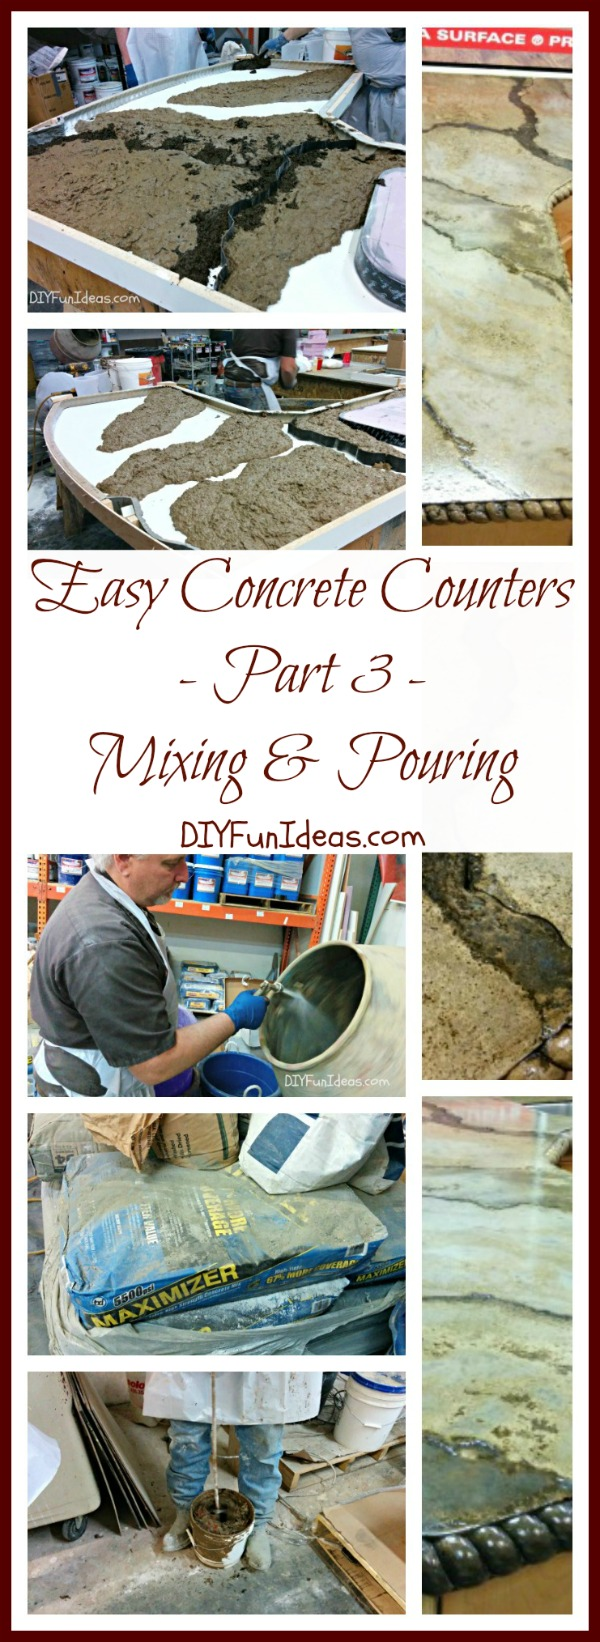 EASY TUTORIAL TO CREATE AMAZING DIY CONCRETE COUNTERTOPS - Part 3: Mixing & Pouring